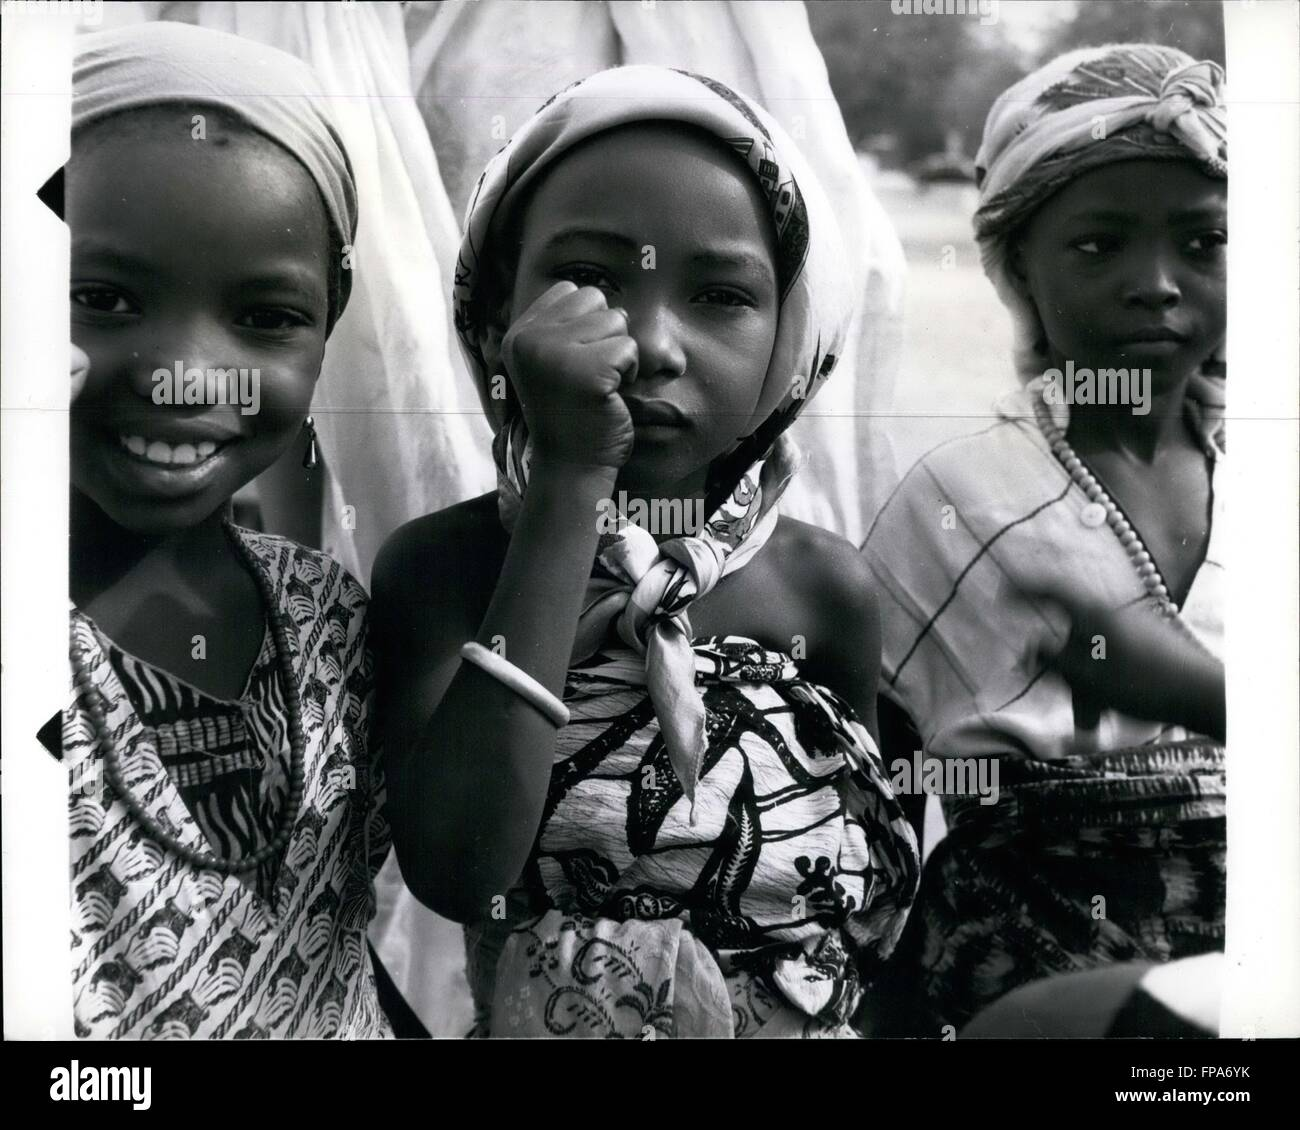 1972 - The Gloucesters Get A Rousing Welcome In N. Nigeria The Duke and Duchess of Gloucester who are visiting Northern - Stock Image